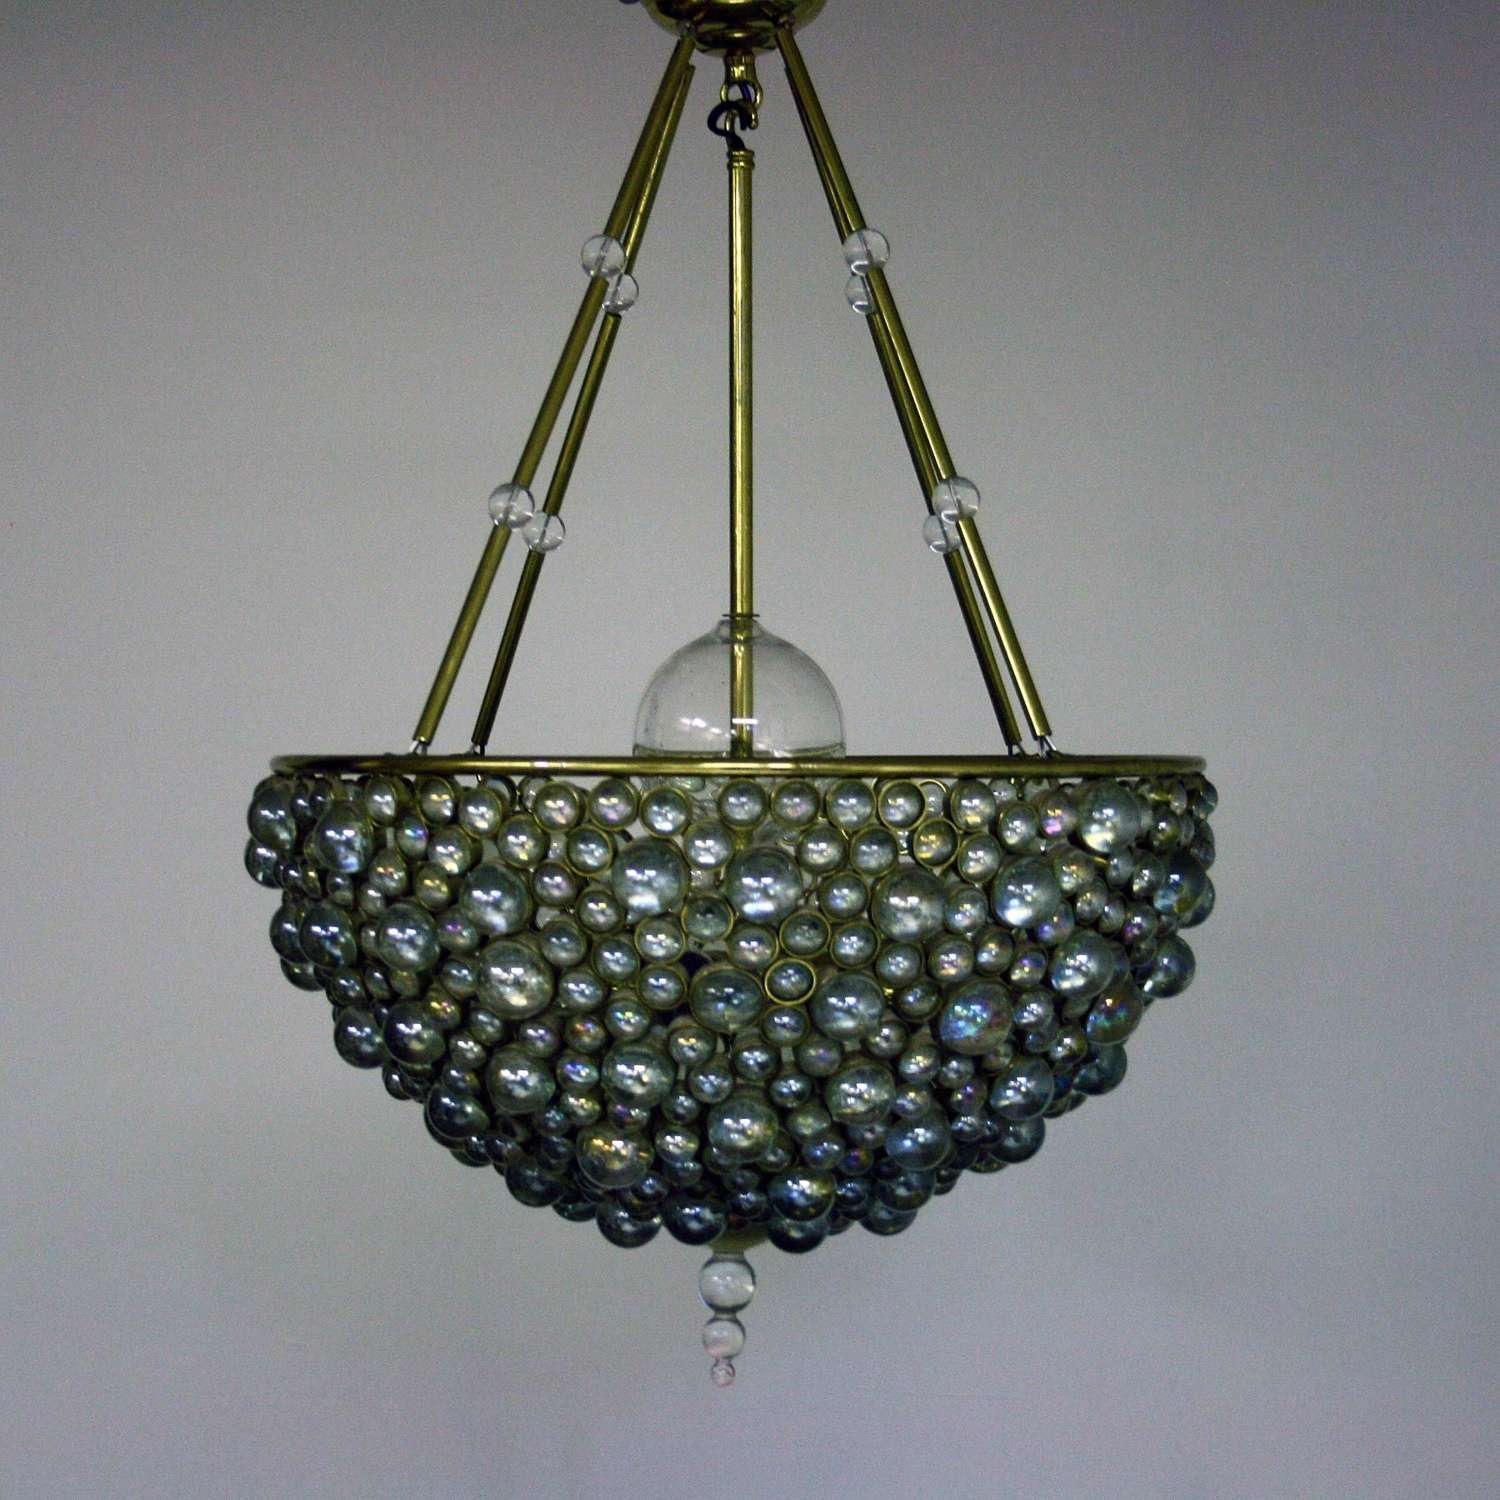 20th Century Brass and Glass Pendant Light